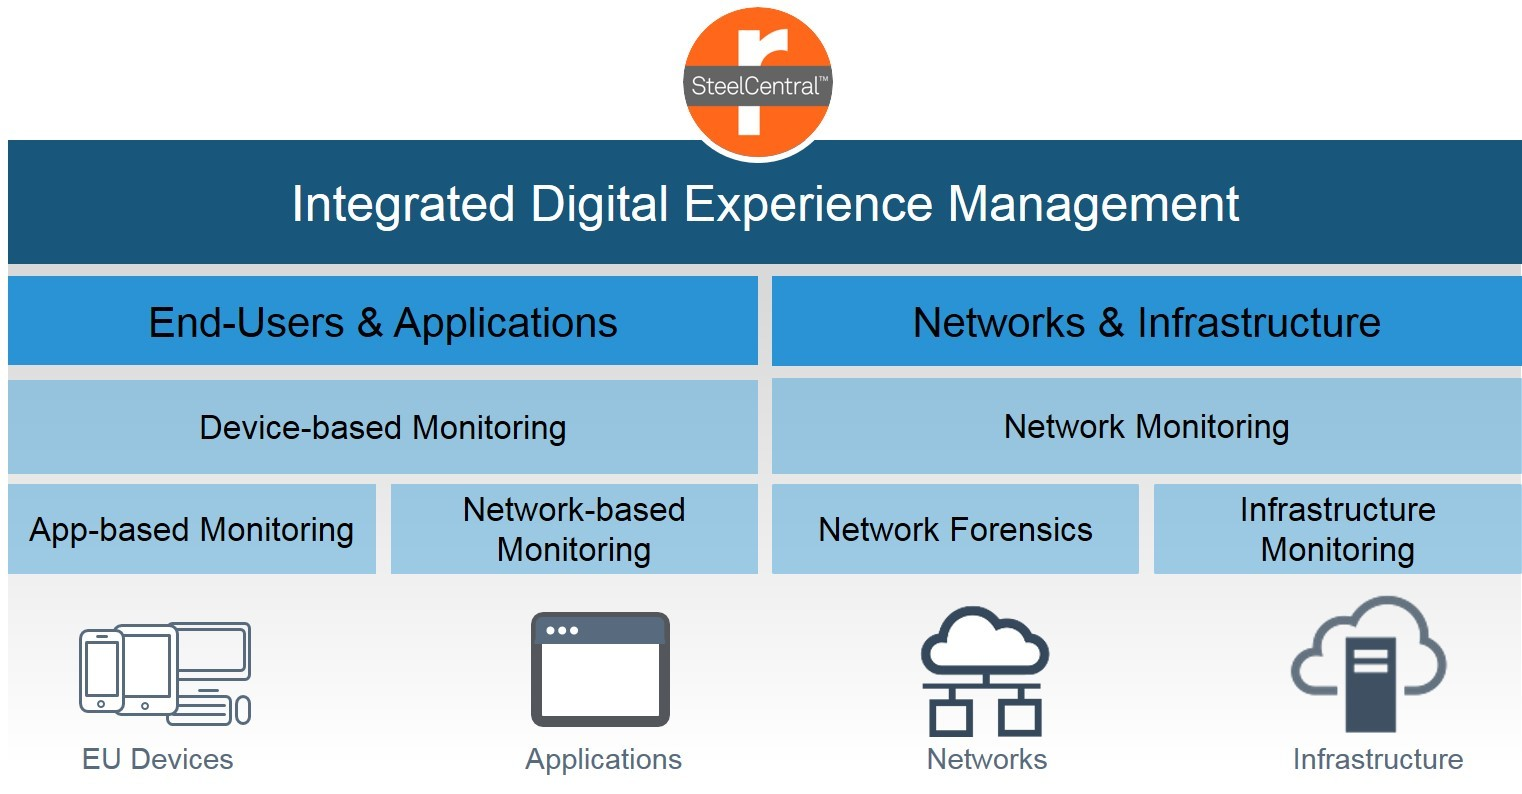 Riverbed launches the most complete and integrated Digital Experience Management solution in the market with latest release of SteelCentral. (Graphic: Business Wire)